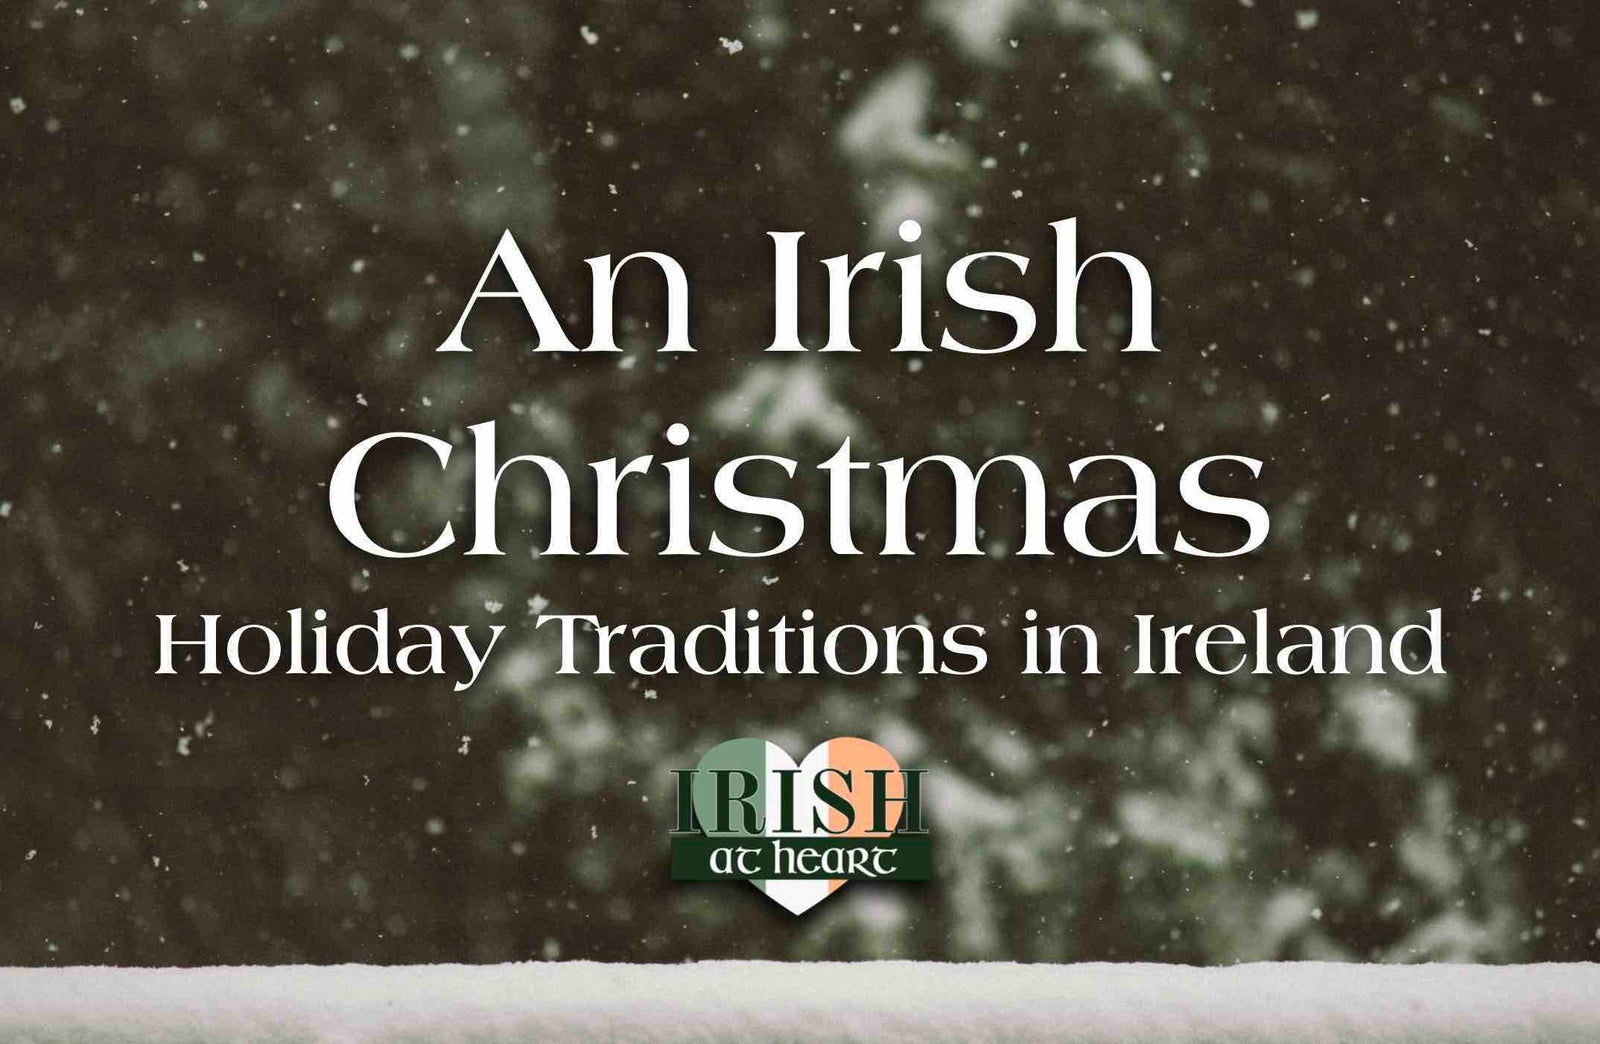 An Irish Christmas - Holiday Traditions in Ireland